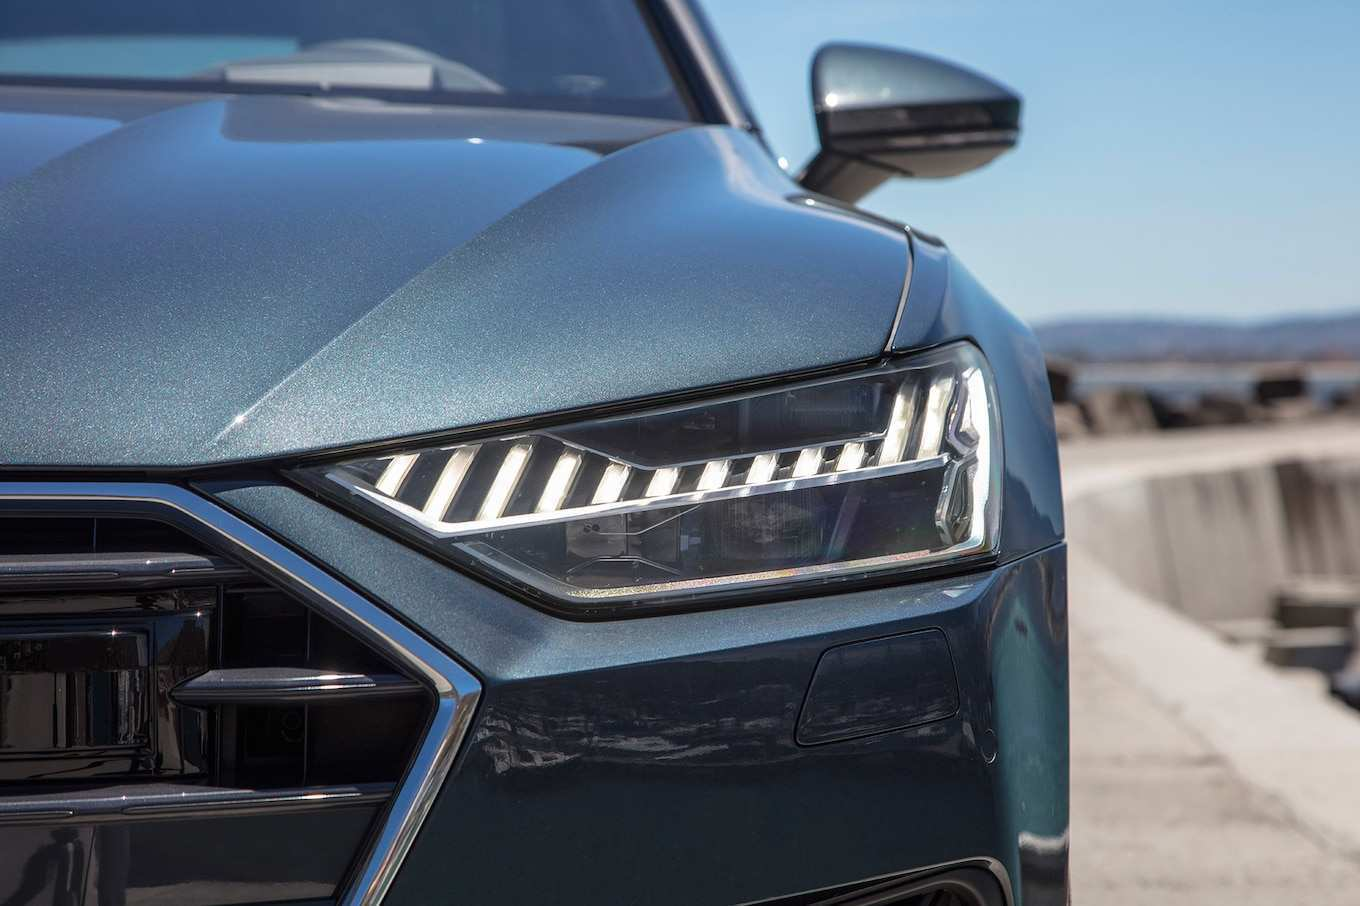 60 Gallery of 2019 Audi A7 Headlights Pictures by 2019 Audi A7 Headlights